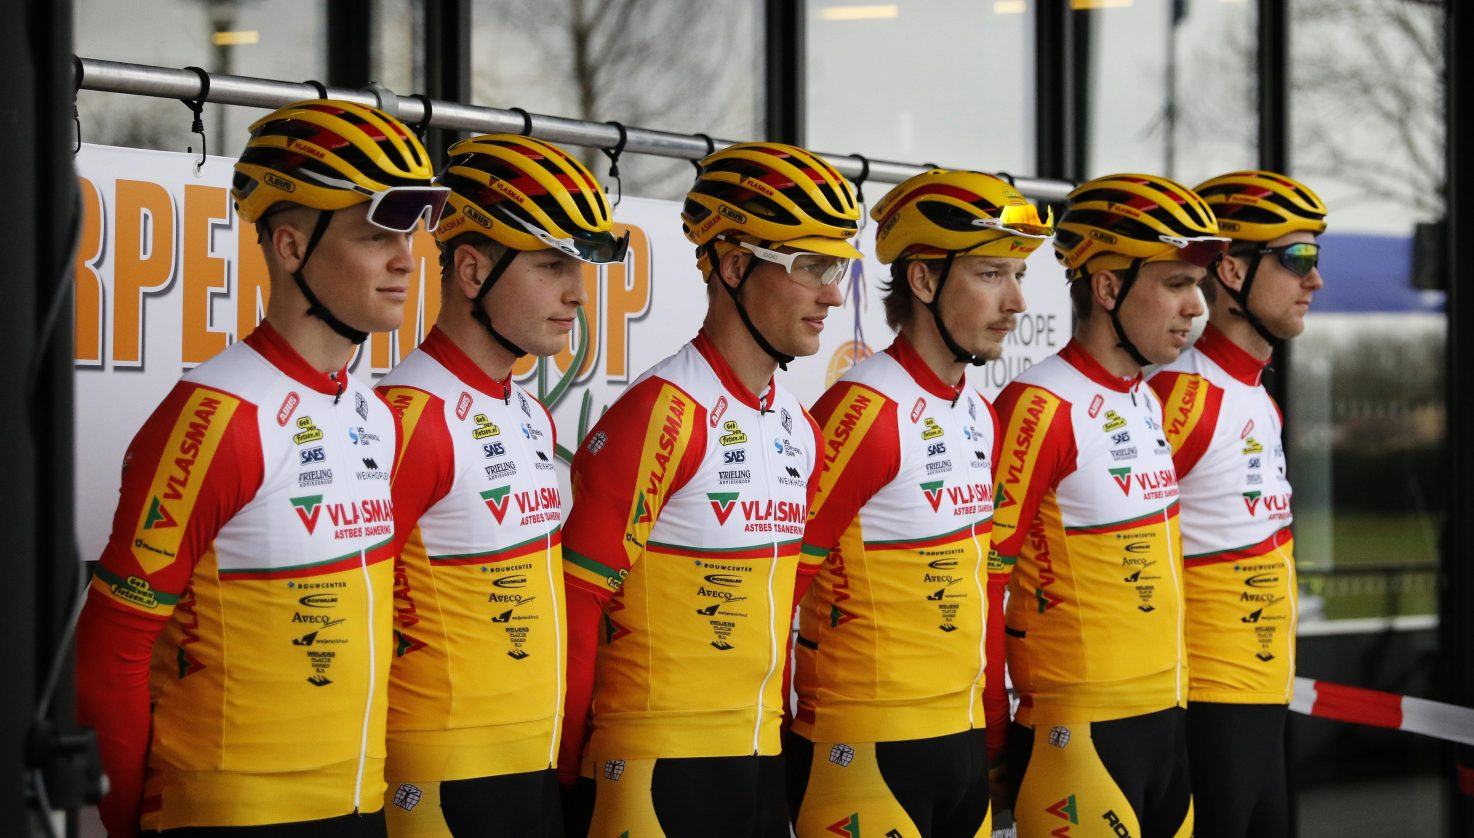 Vlasman Cycling Team